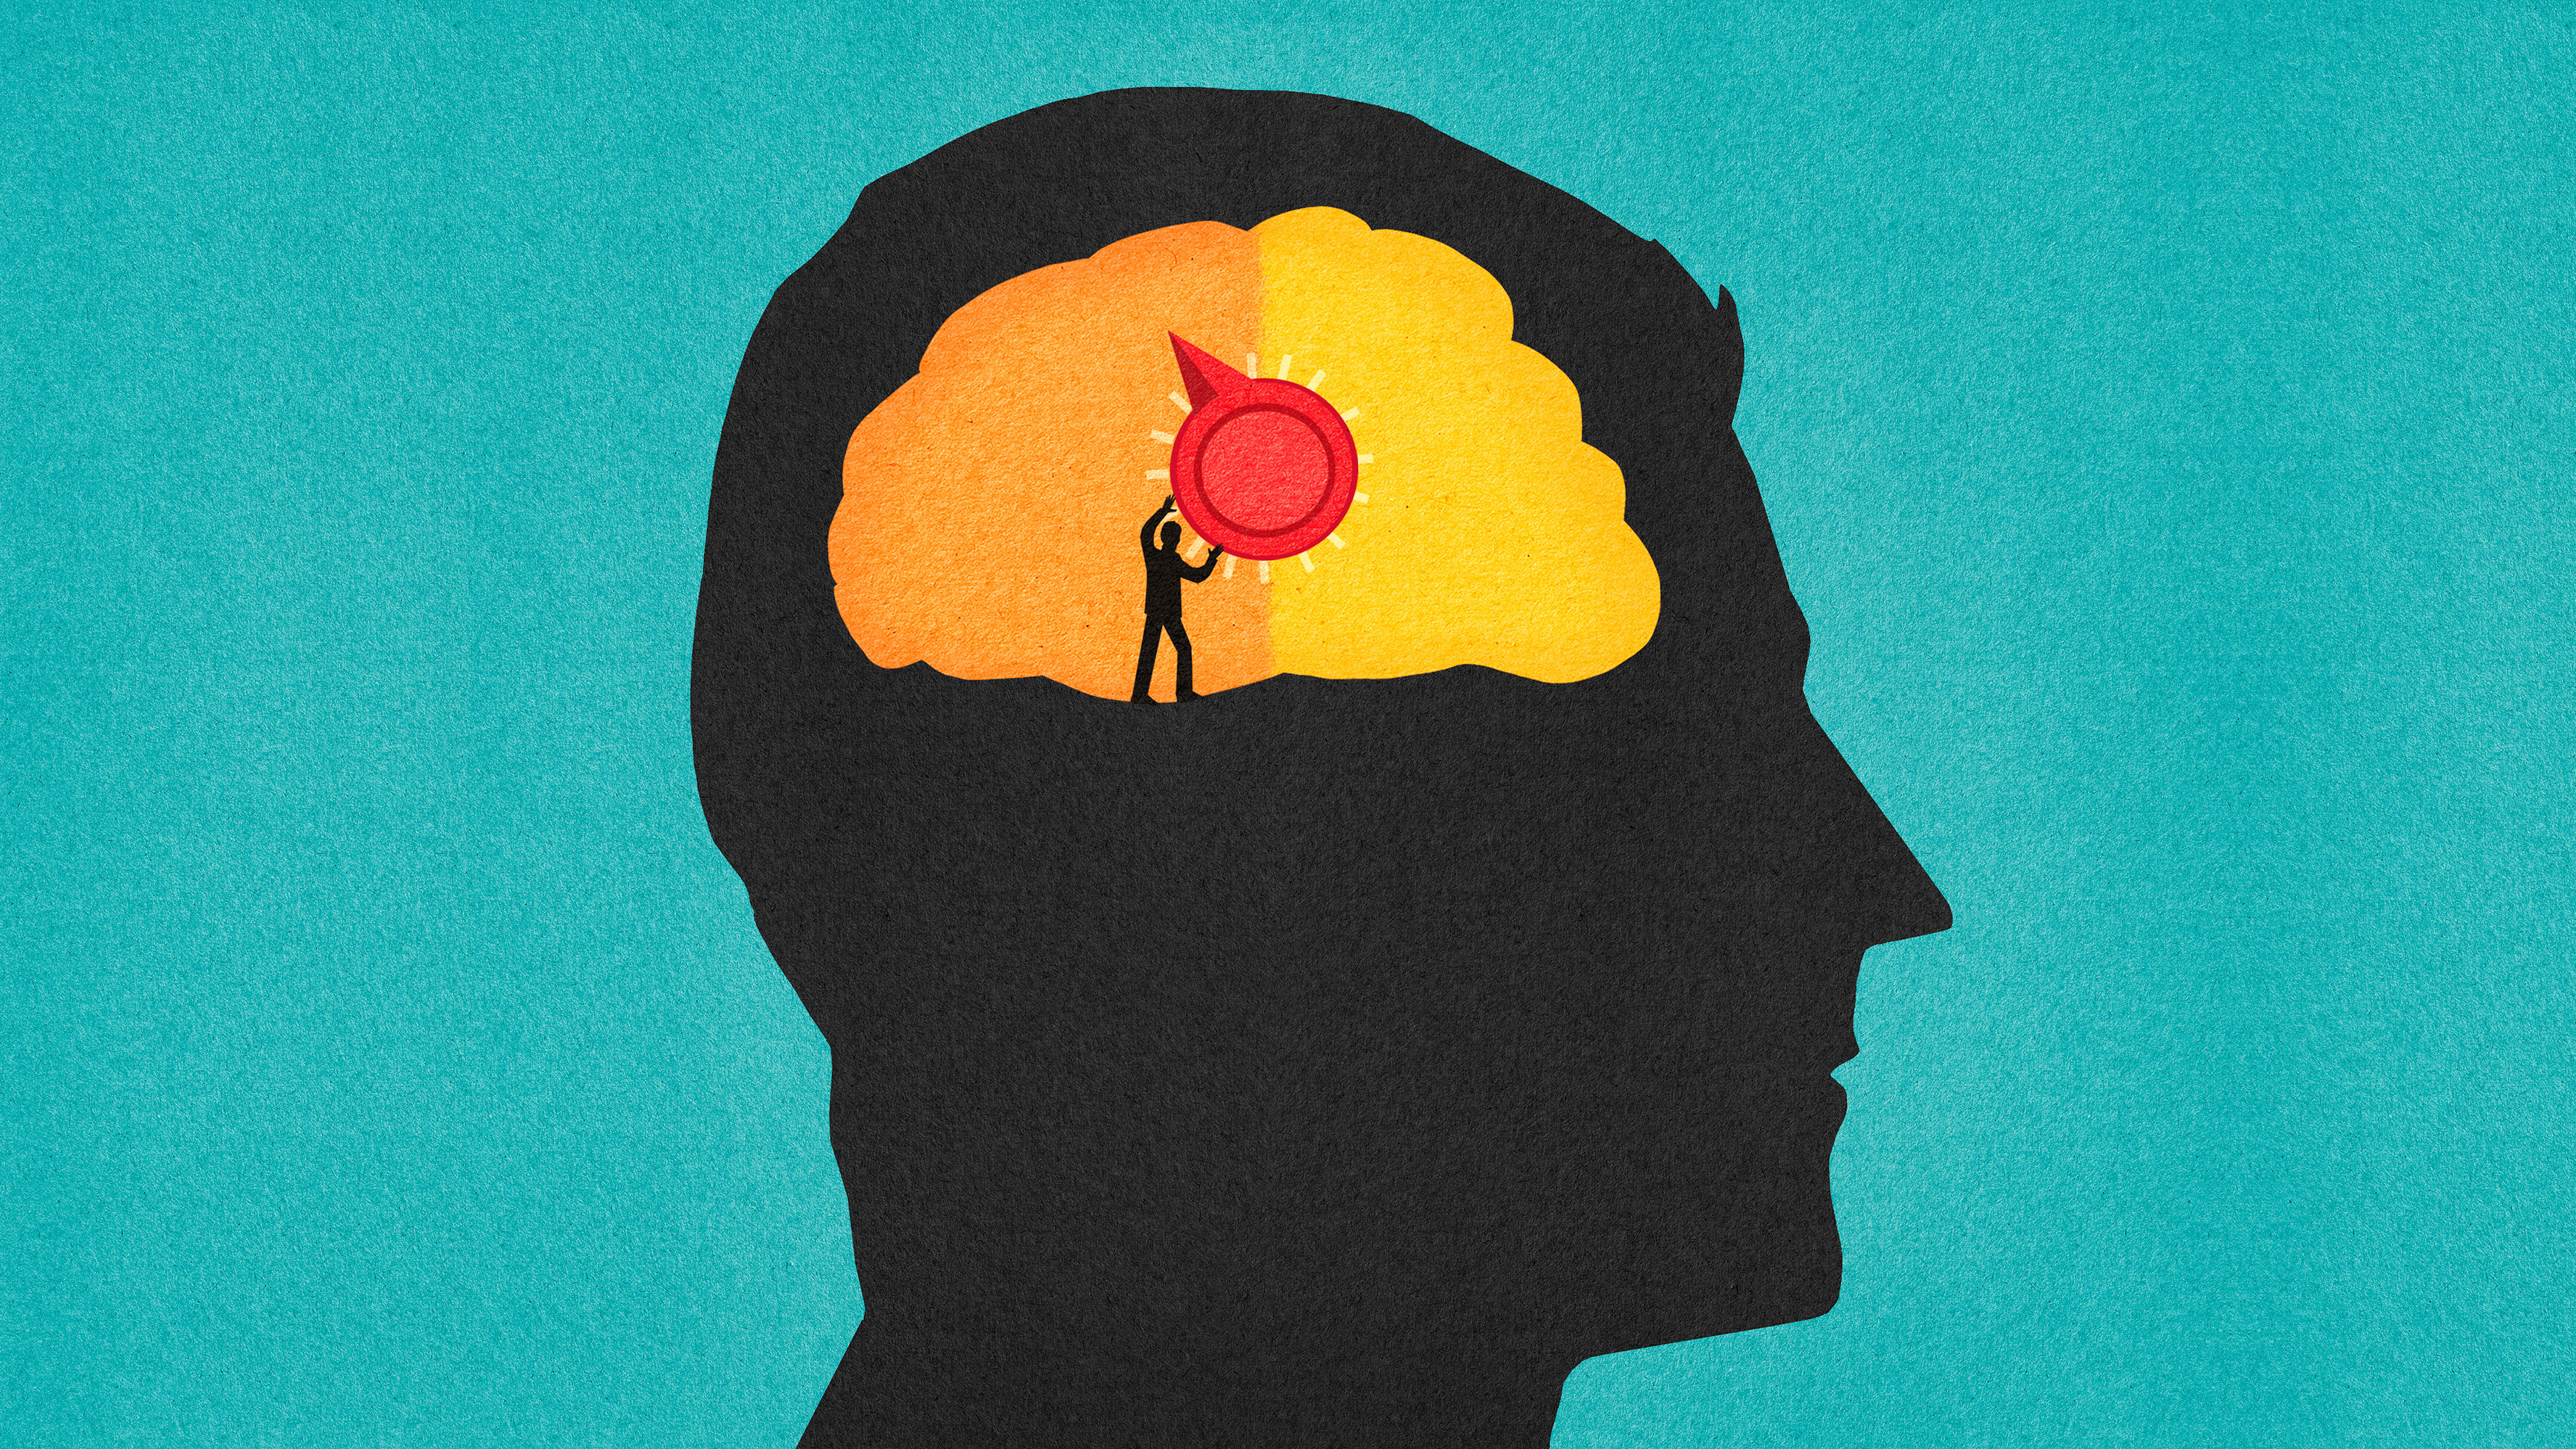 npr.org - Allison Aubrey - Heat Making You Lethargic? Research Shows It Can Slow Your Brain, Too